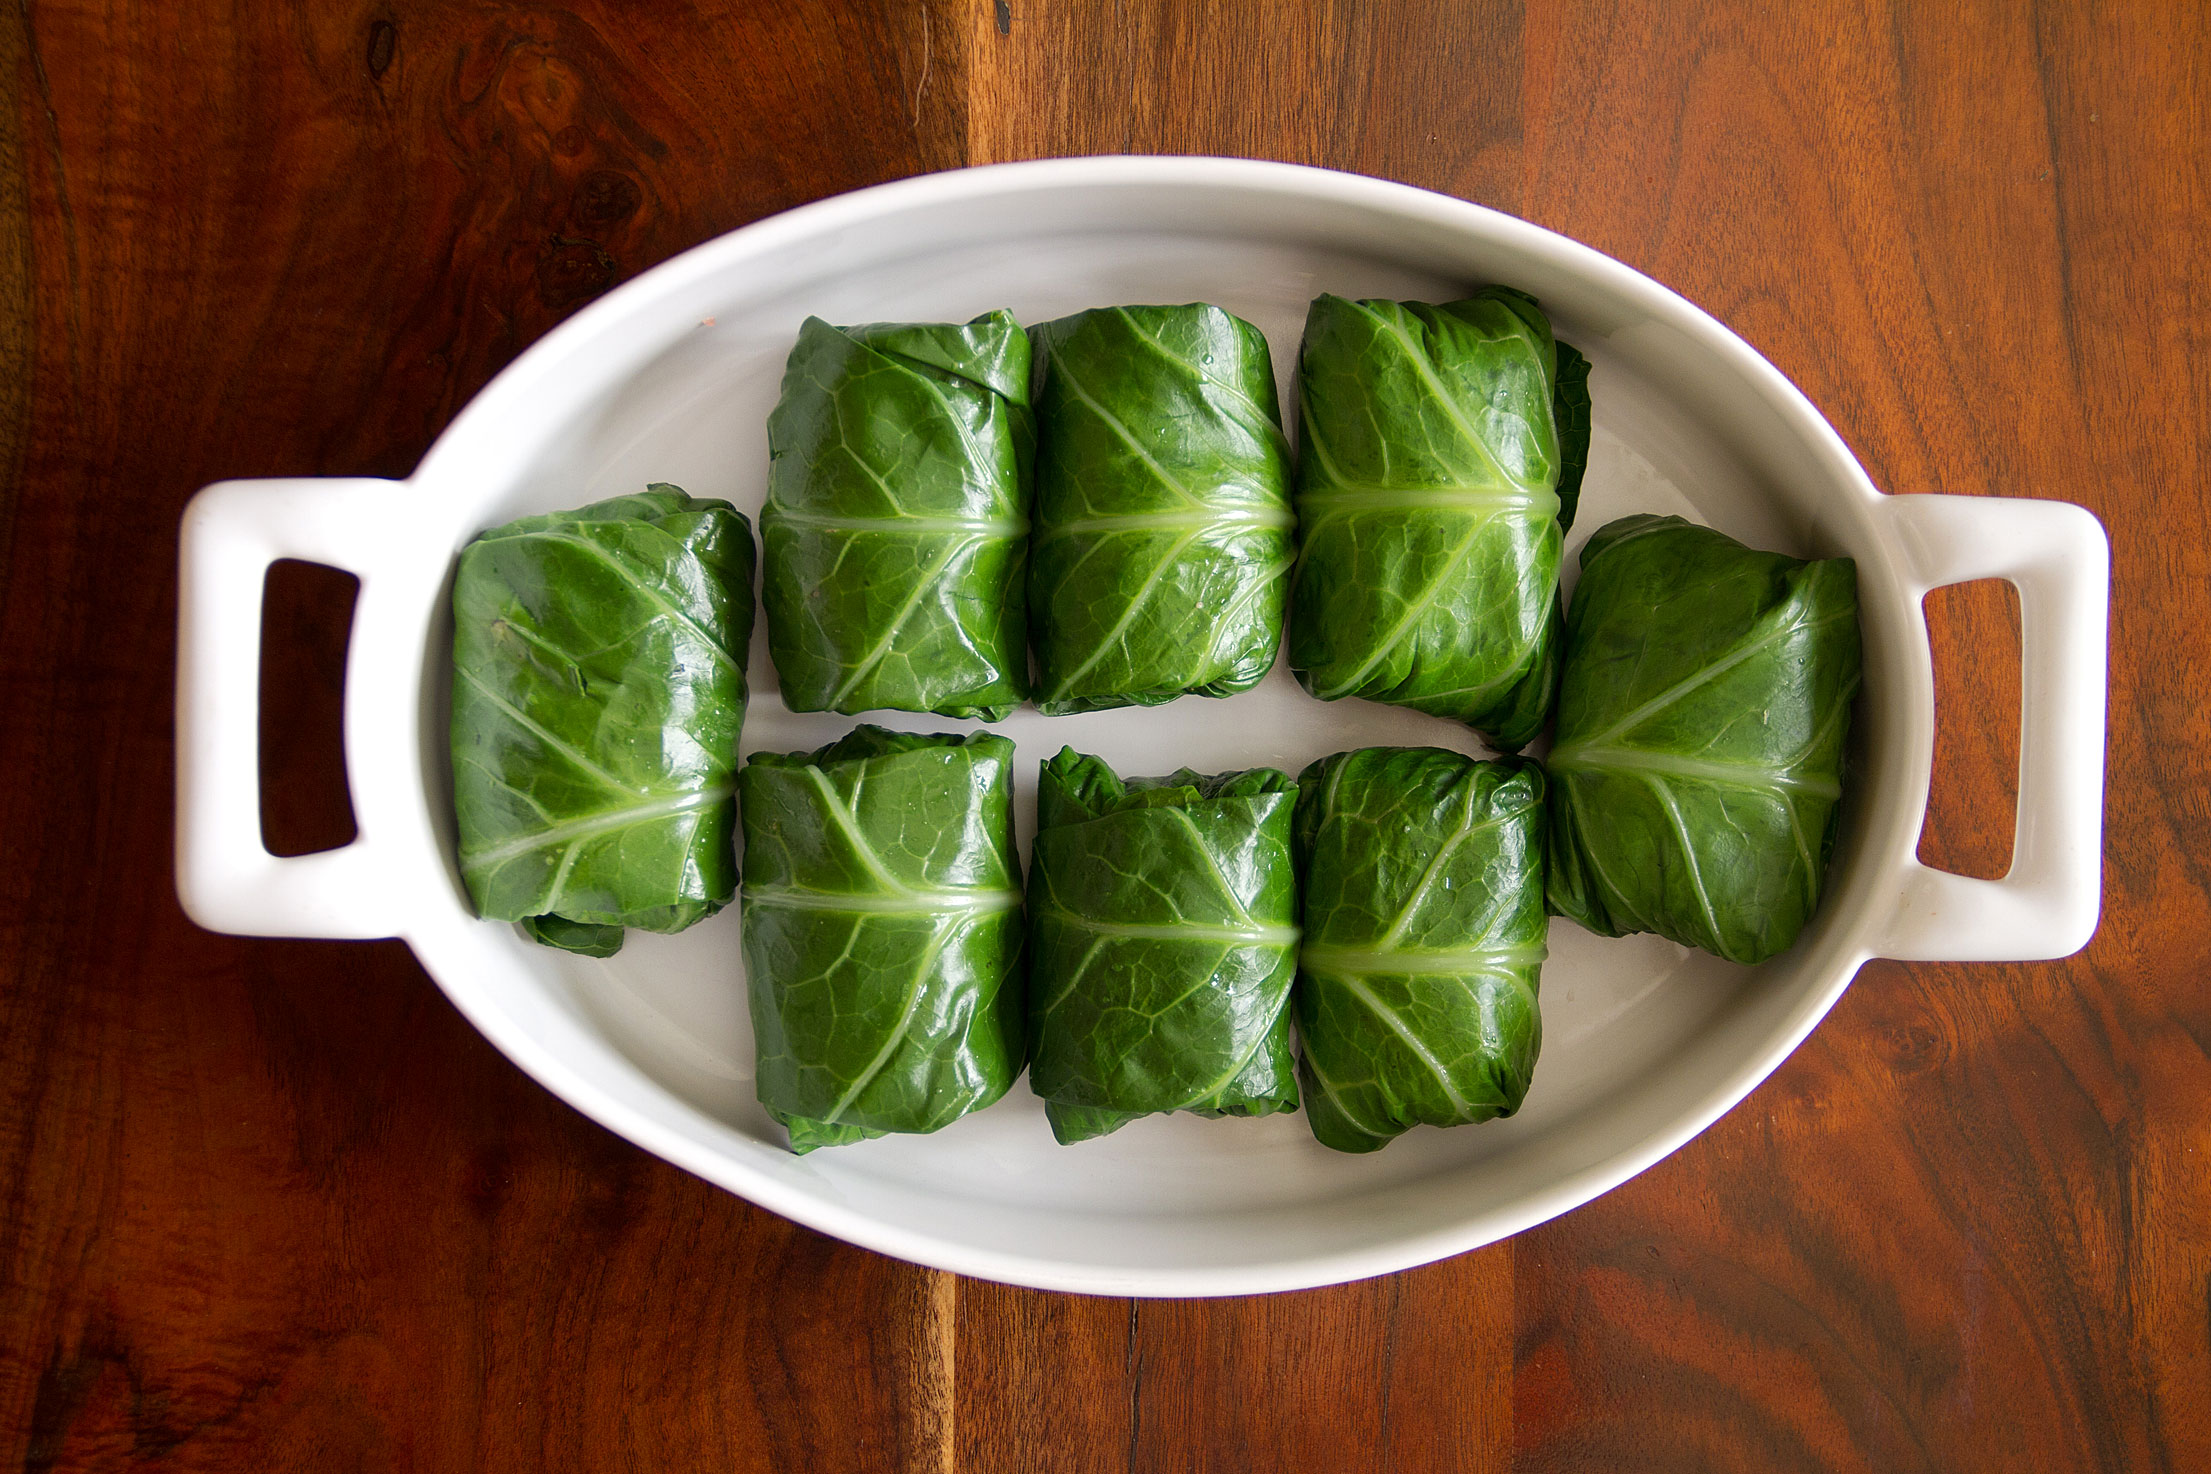 Modern Potluck: Pork-Stuffed Collards